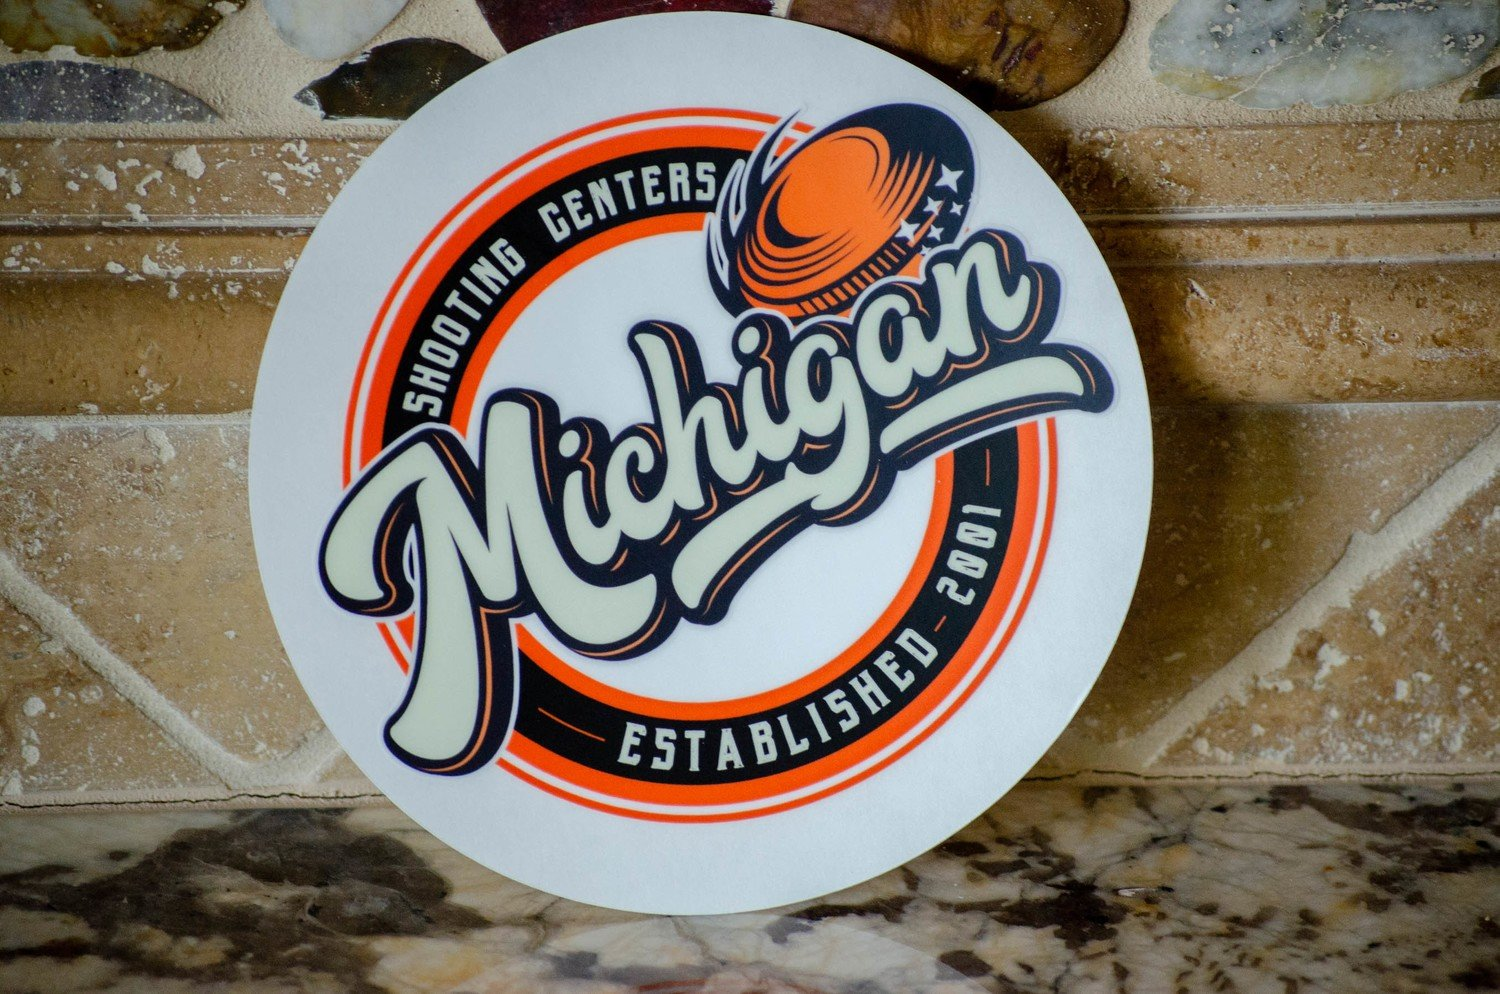 Michigan Shooting Centers Decal